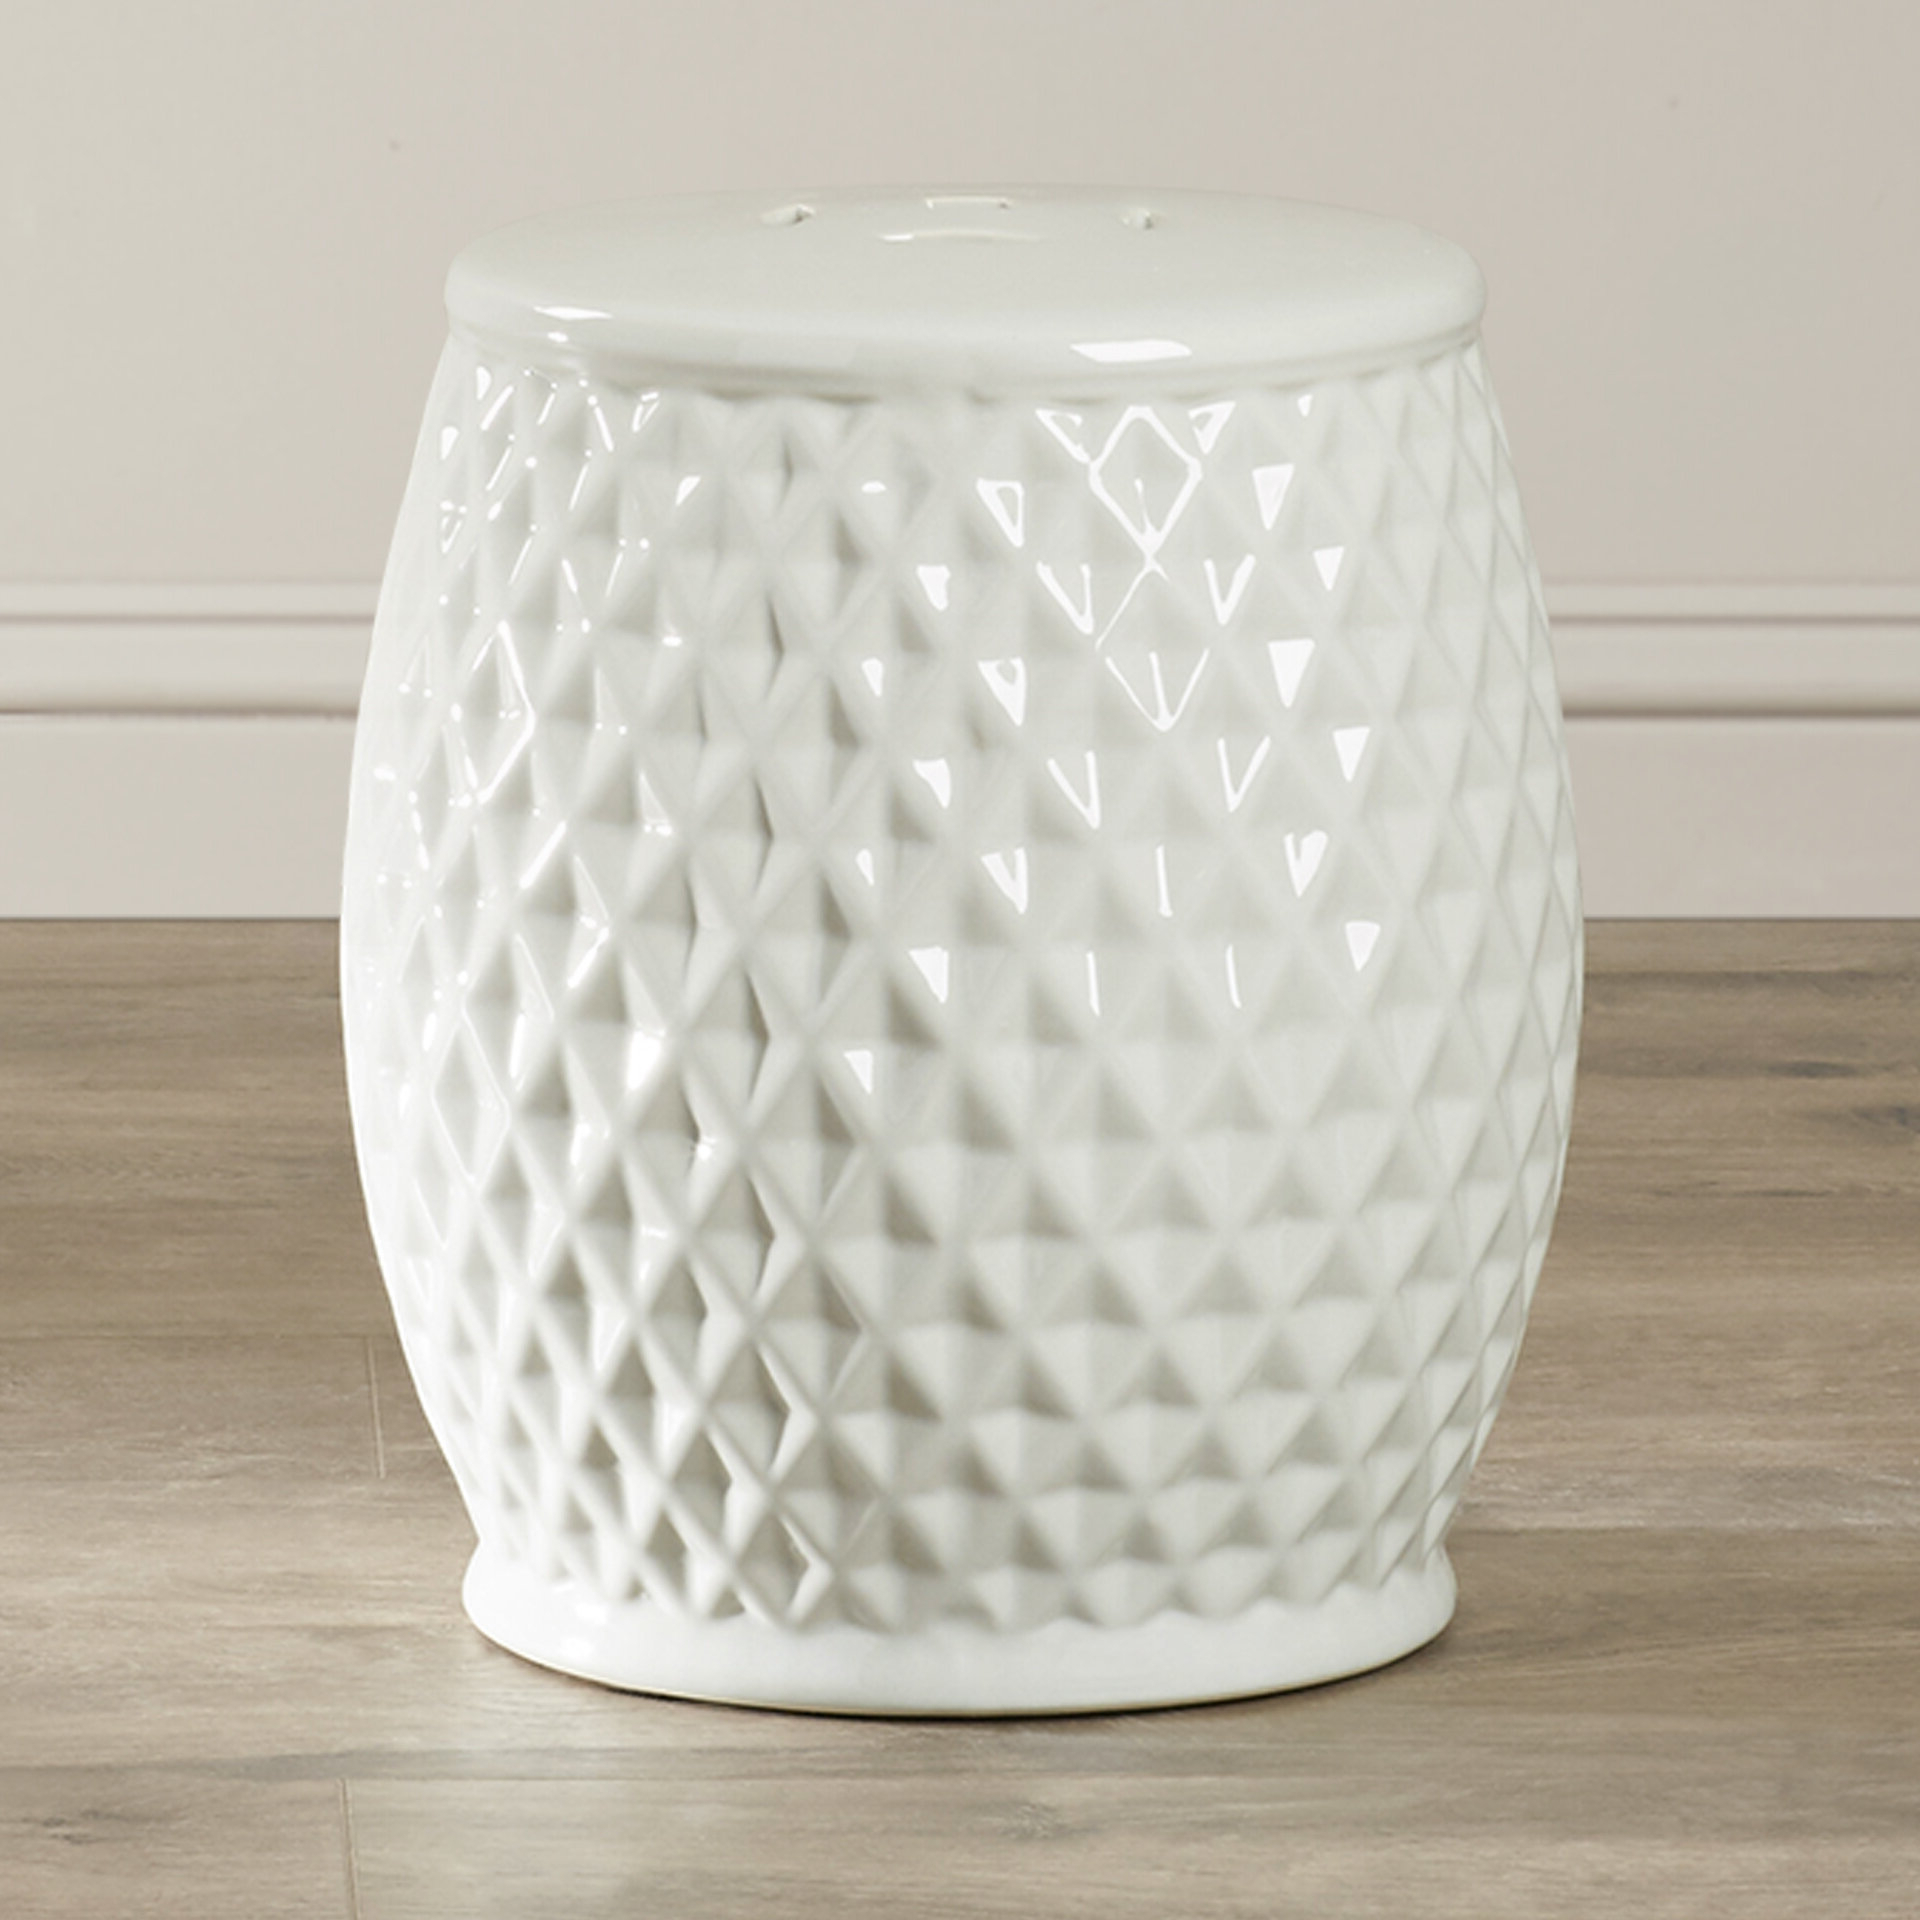 Fonzworth Harlequin Ceramic Garden Stool With Regard To Most Popular Karlov Ceramic Garden Stools (View 15 of 30)